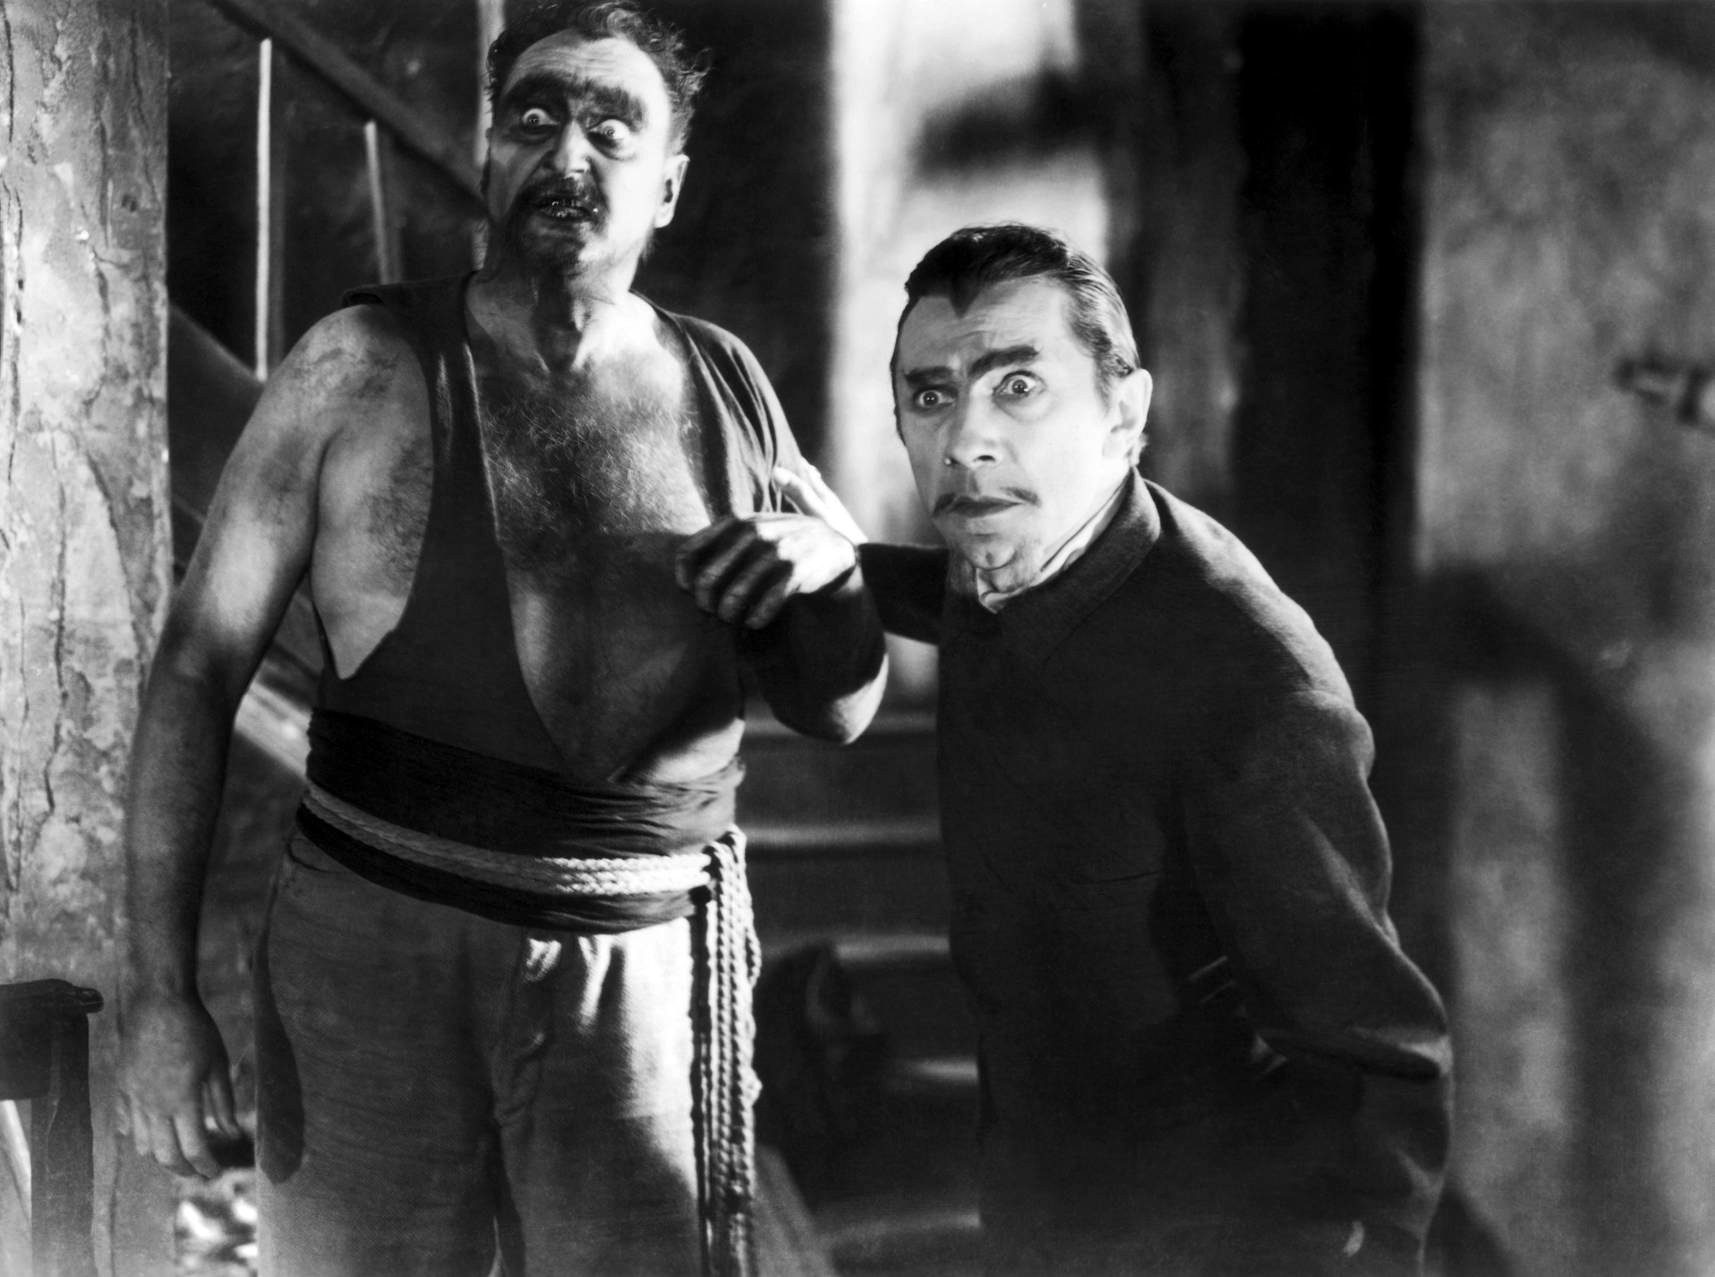 Bela Lugosi With Frederick Peters (L)